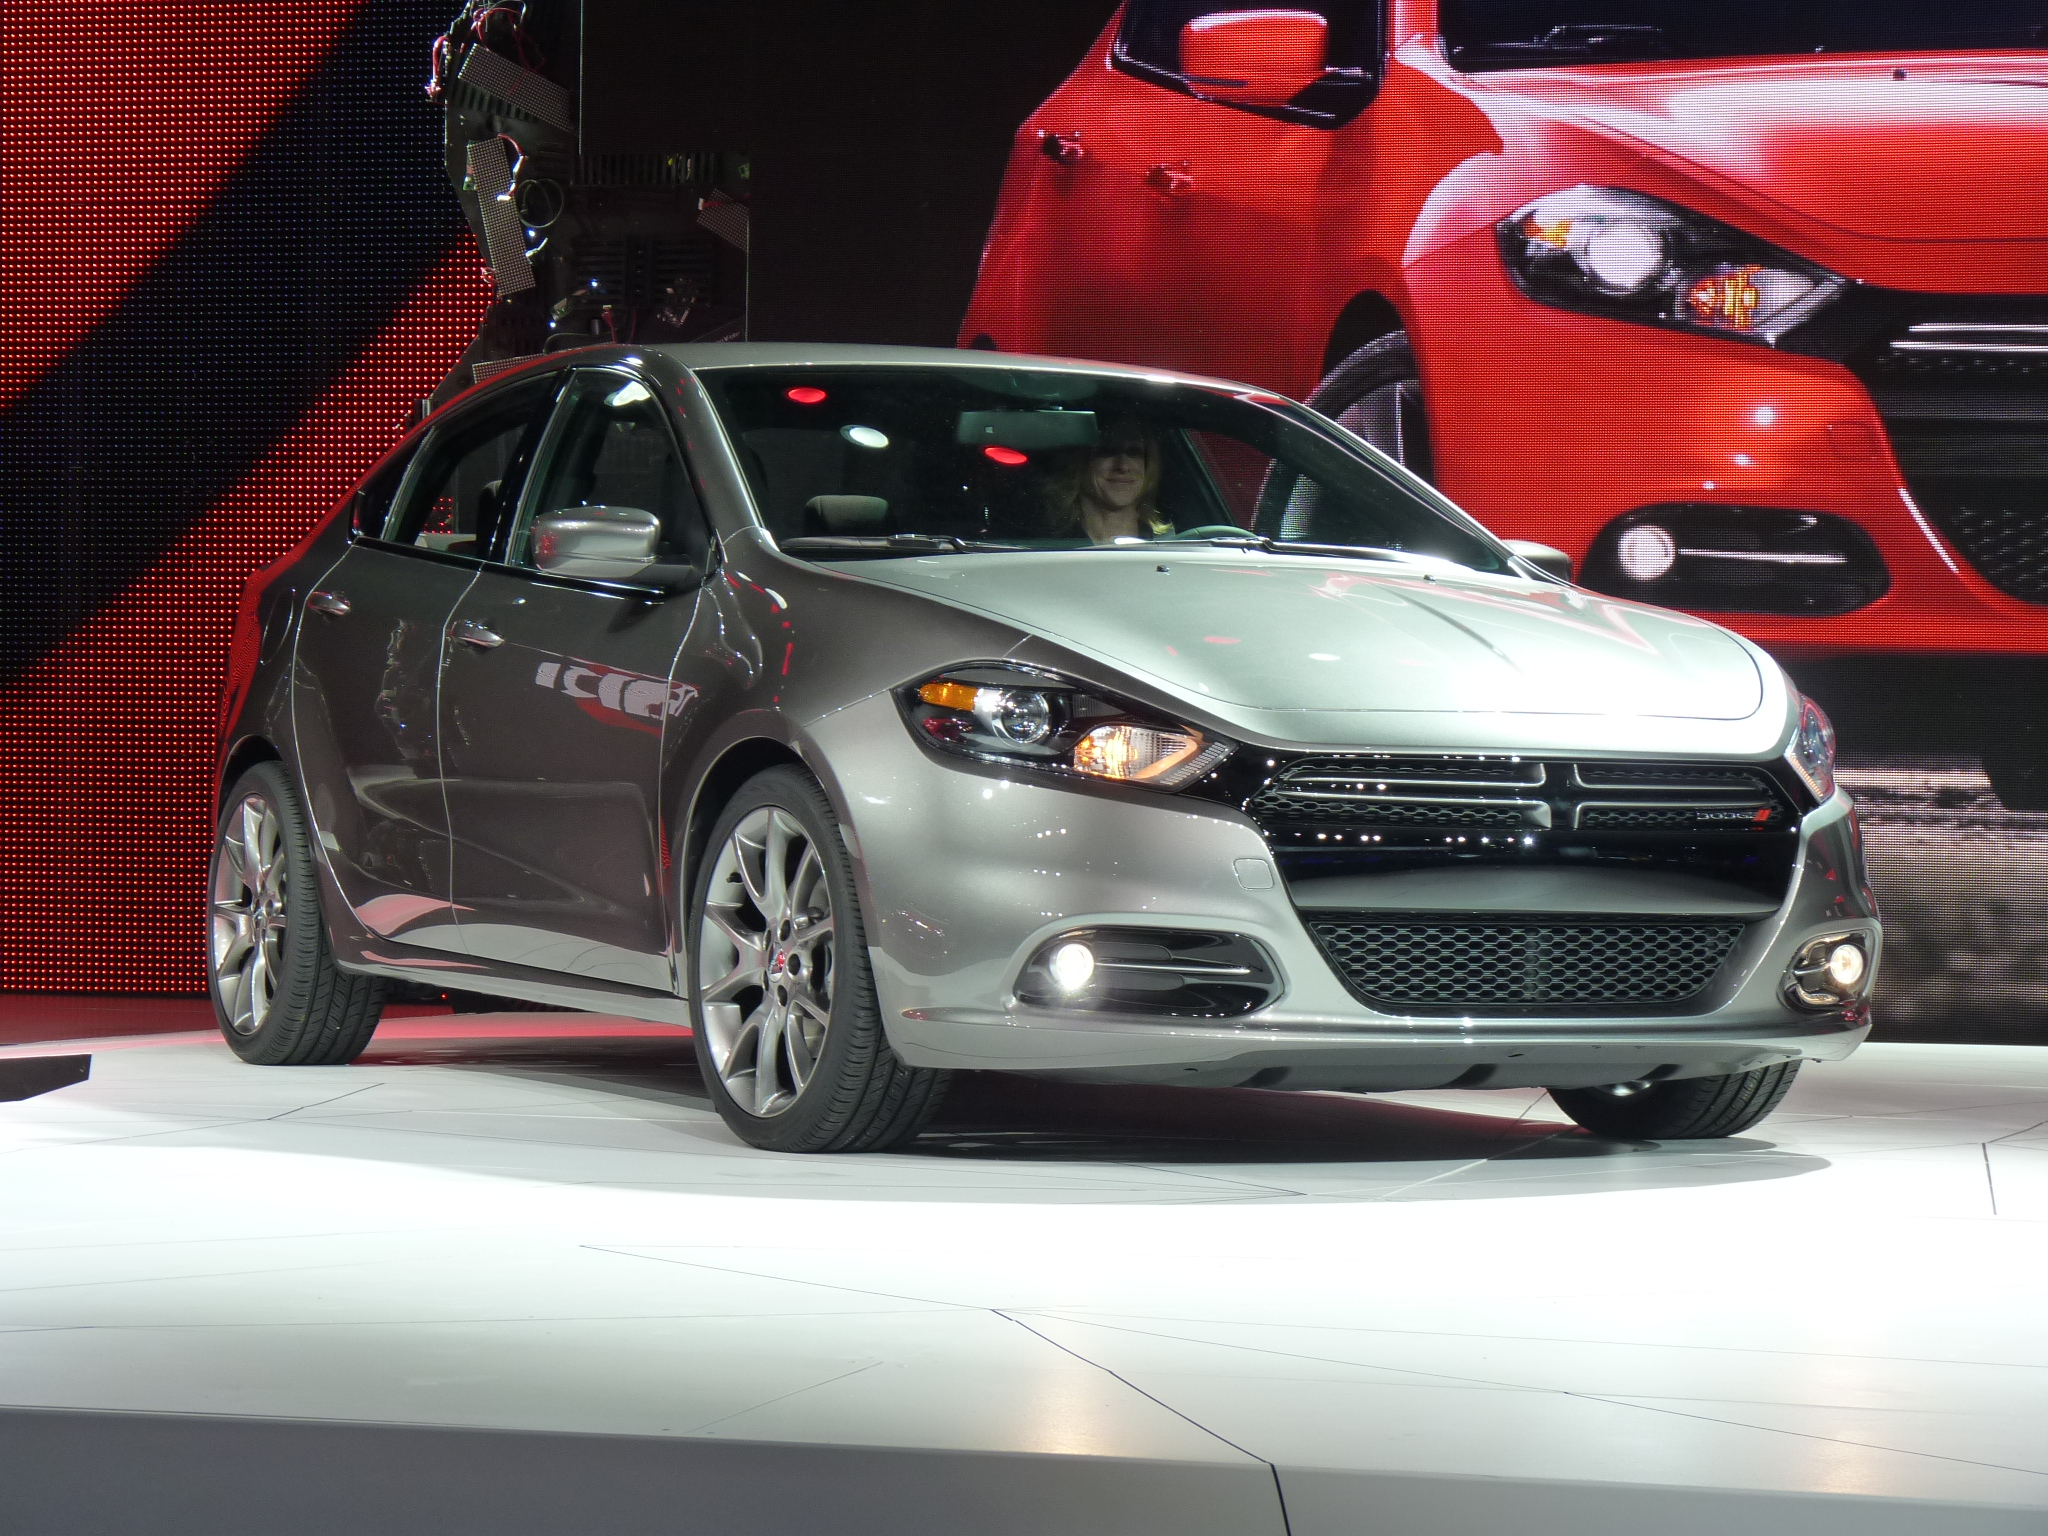 35 Amazing dodge dart prices – otoriyoce